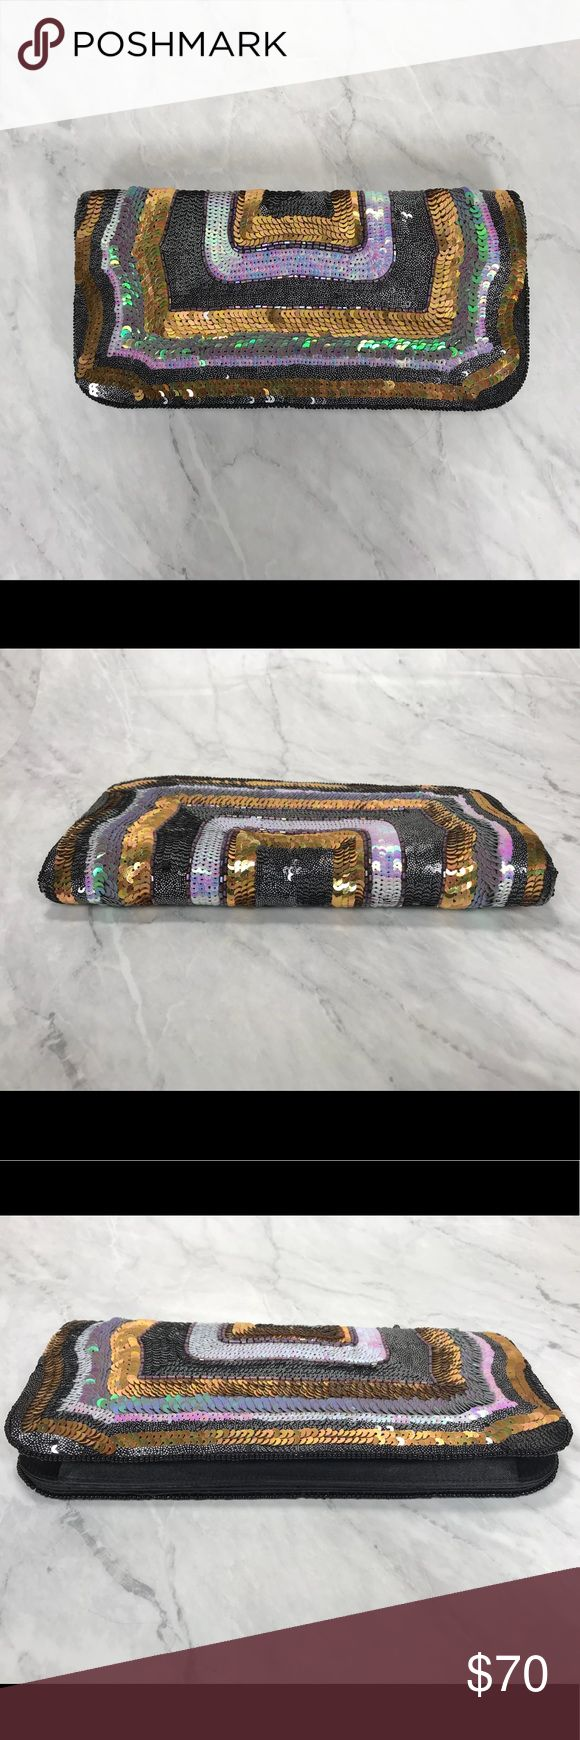 French Connection Sequin Clutch / Shoulder Bag How cute is this!?? Jazz up any outfit with this colorful yet classy number. Comes with silver tone cross body / shoulder strap. Wear it as a clutch or over your shoulder. Preloved and in great condition. Almost new! From a clean, smoke and pet free home. Ask any questions you may like! Happy Shopping! 🛒🛍 French Connection Bags Clutches & Wristlets